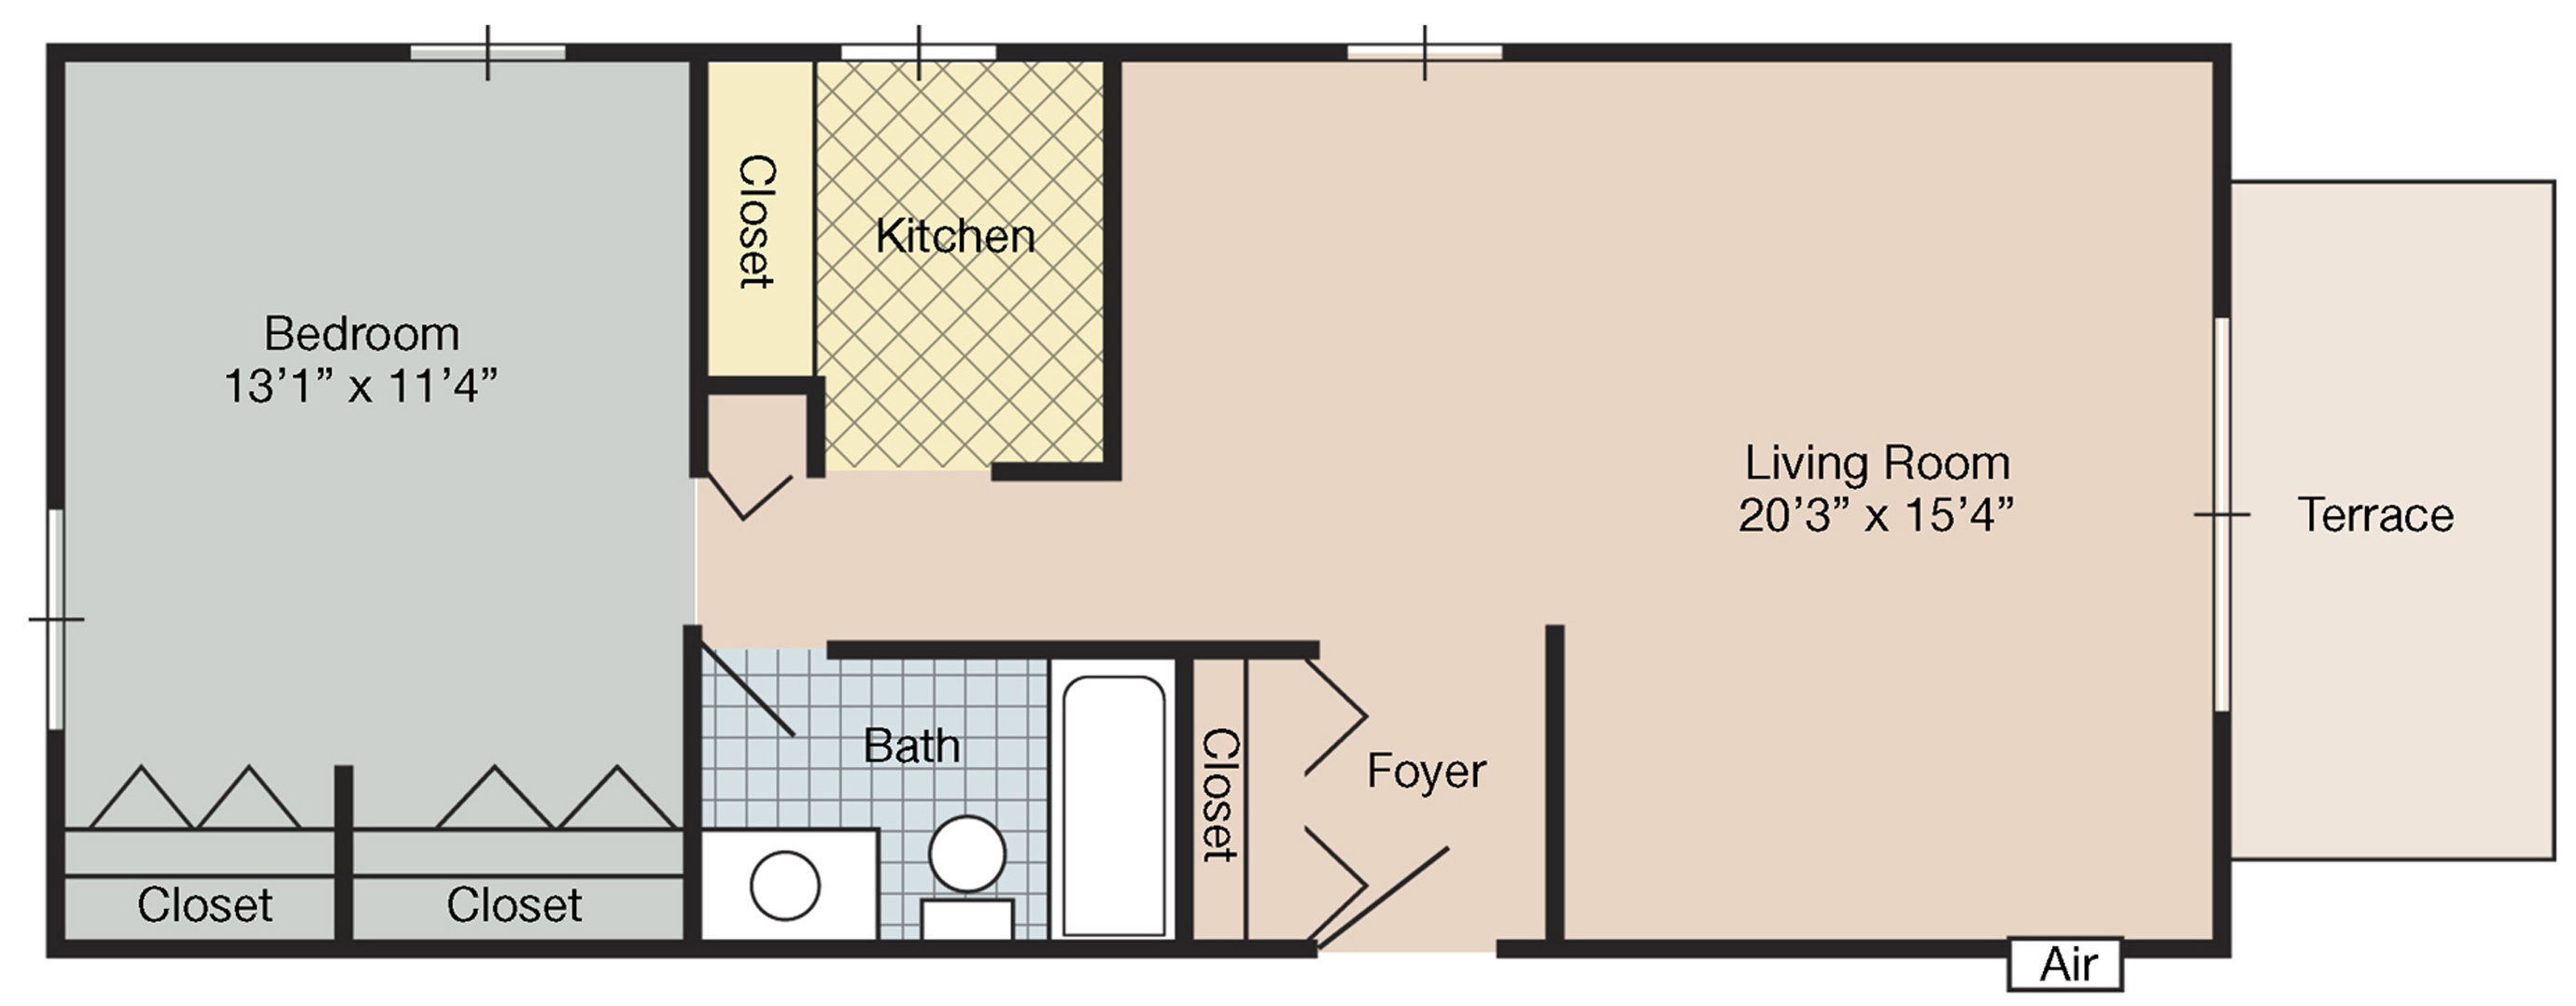 farmwestfloorplan1bedroom